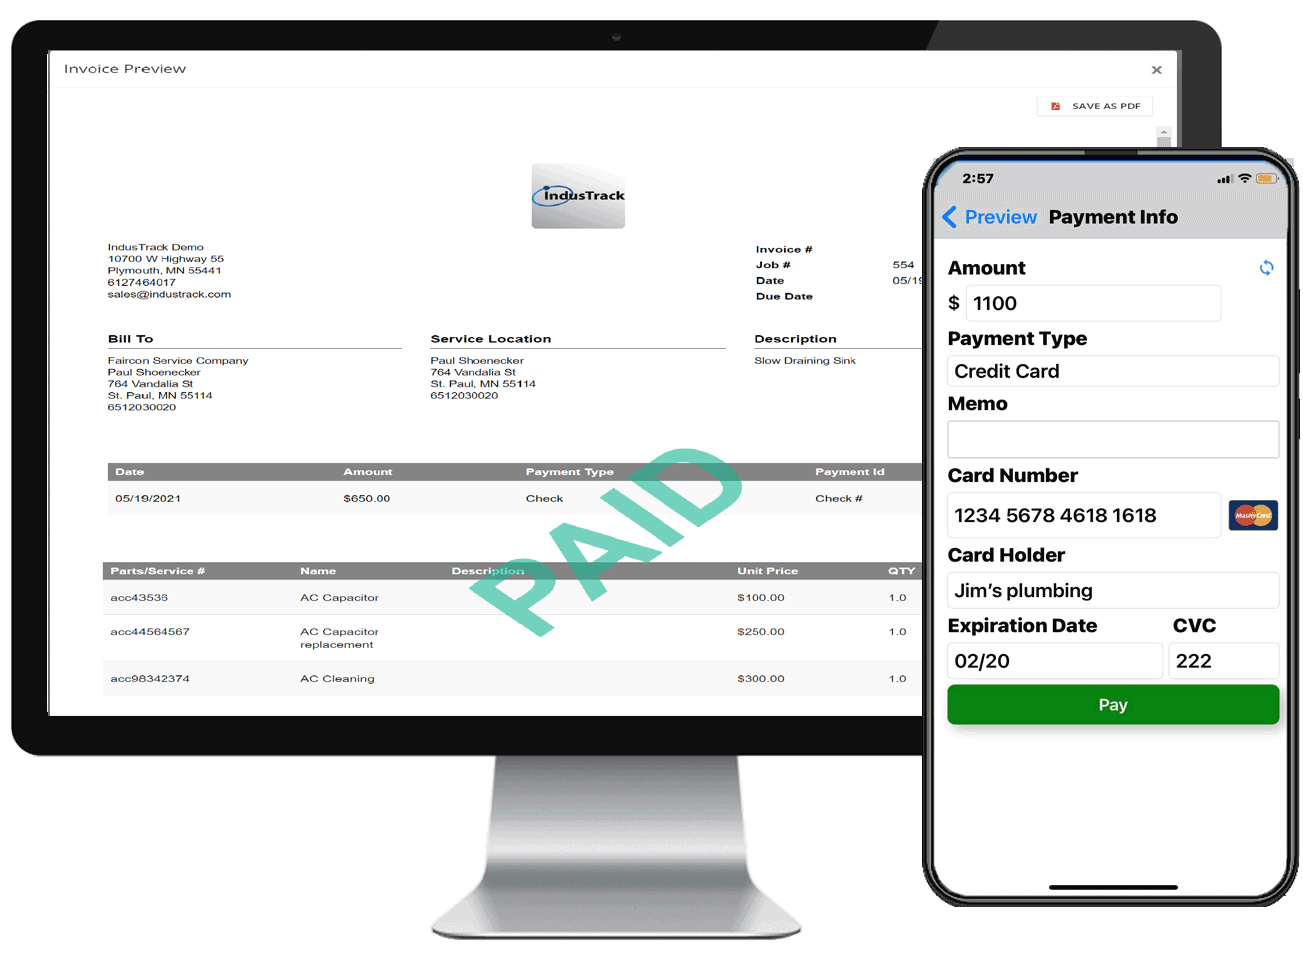 Invoice and Payment